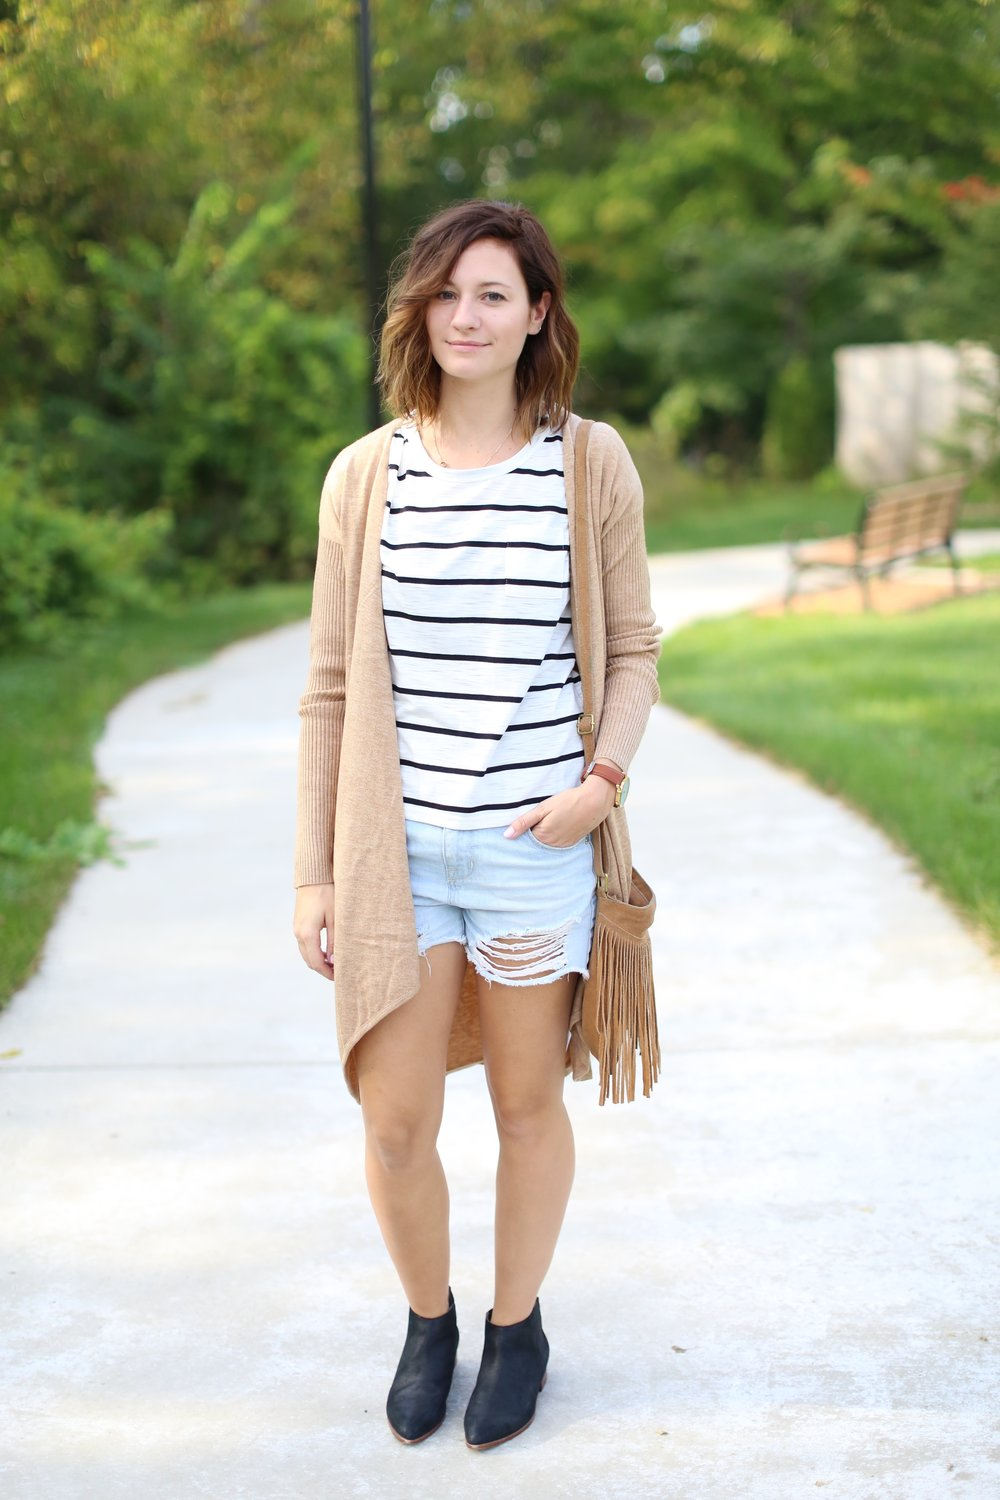 Black and White Stripes | Long Cardigan | Distressed Jeans | Katelyn Now